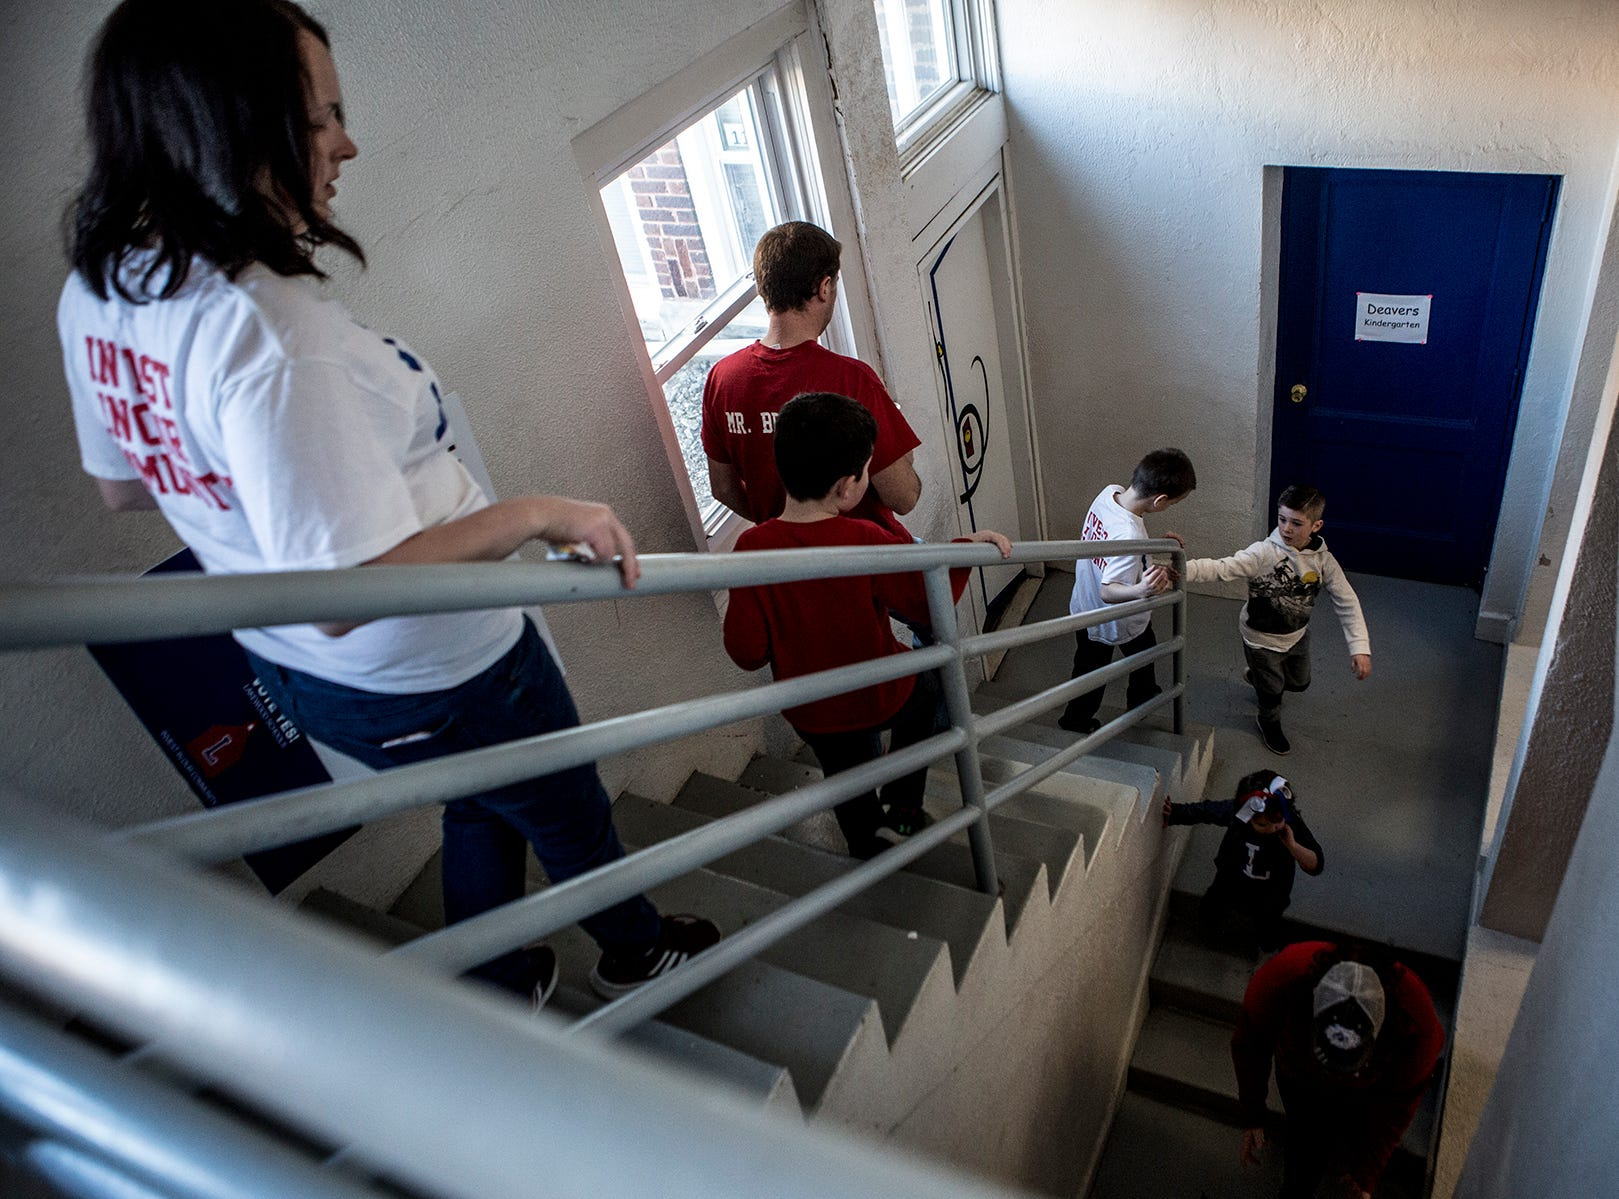 Hebron Elementary is like a maze, making it hard to navigate, especially with all the stairs. There is handicap access to the second floor, but not the third floor which is where second grade classrooms are. When the chair lift breaks students have had to be carried up to their classrooms.